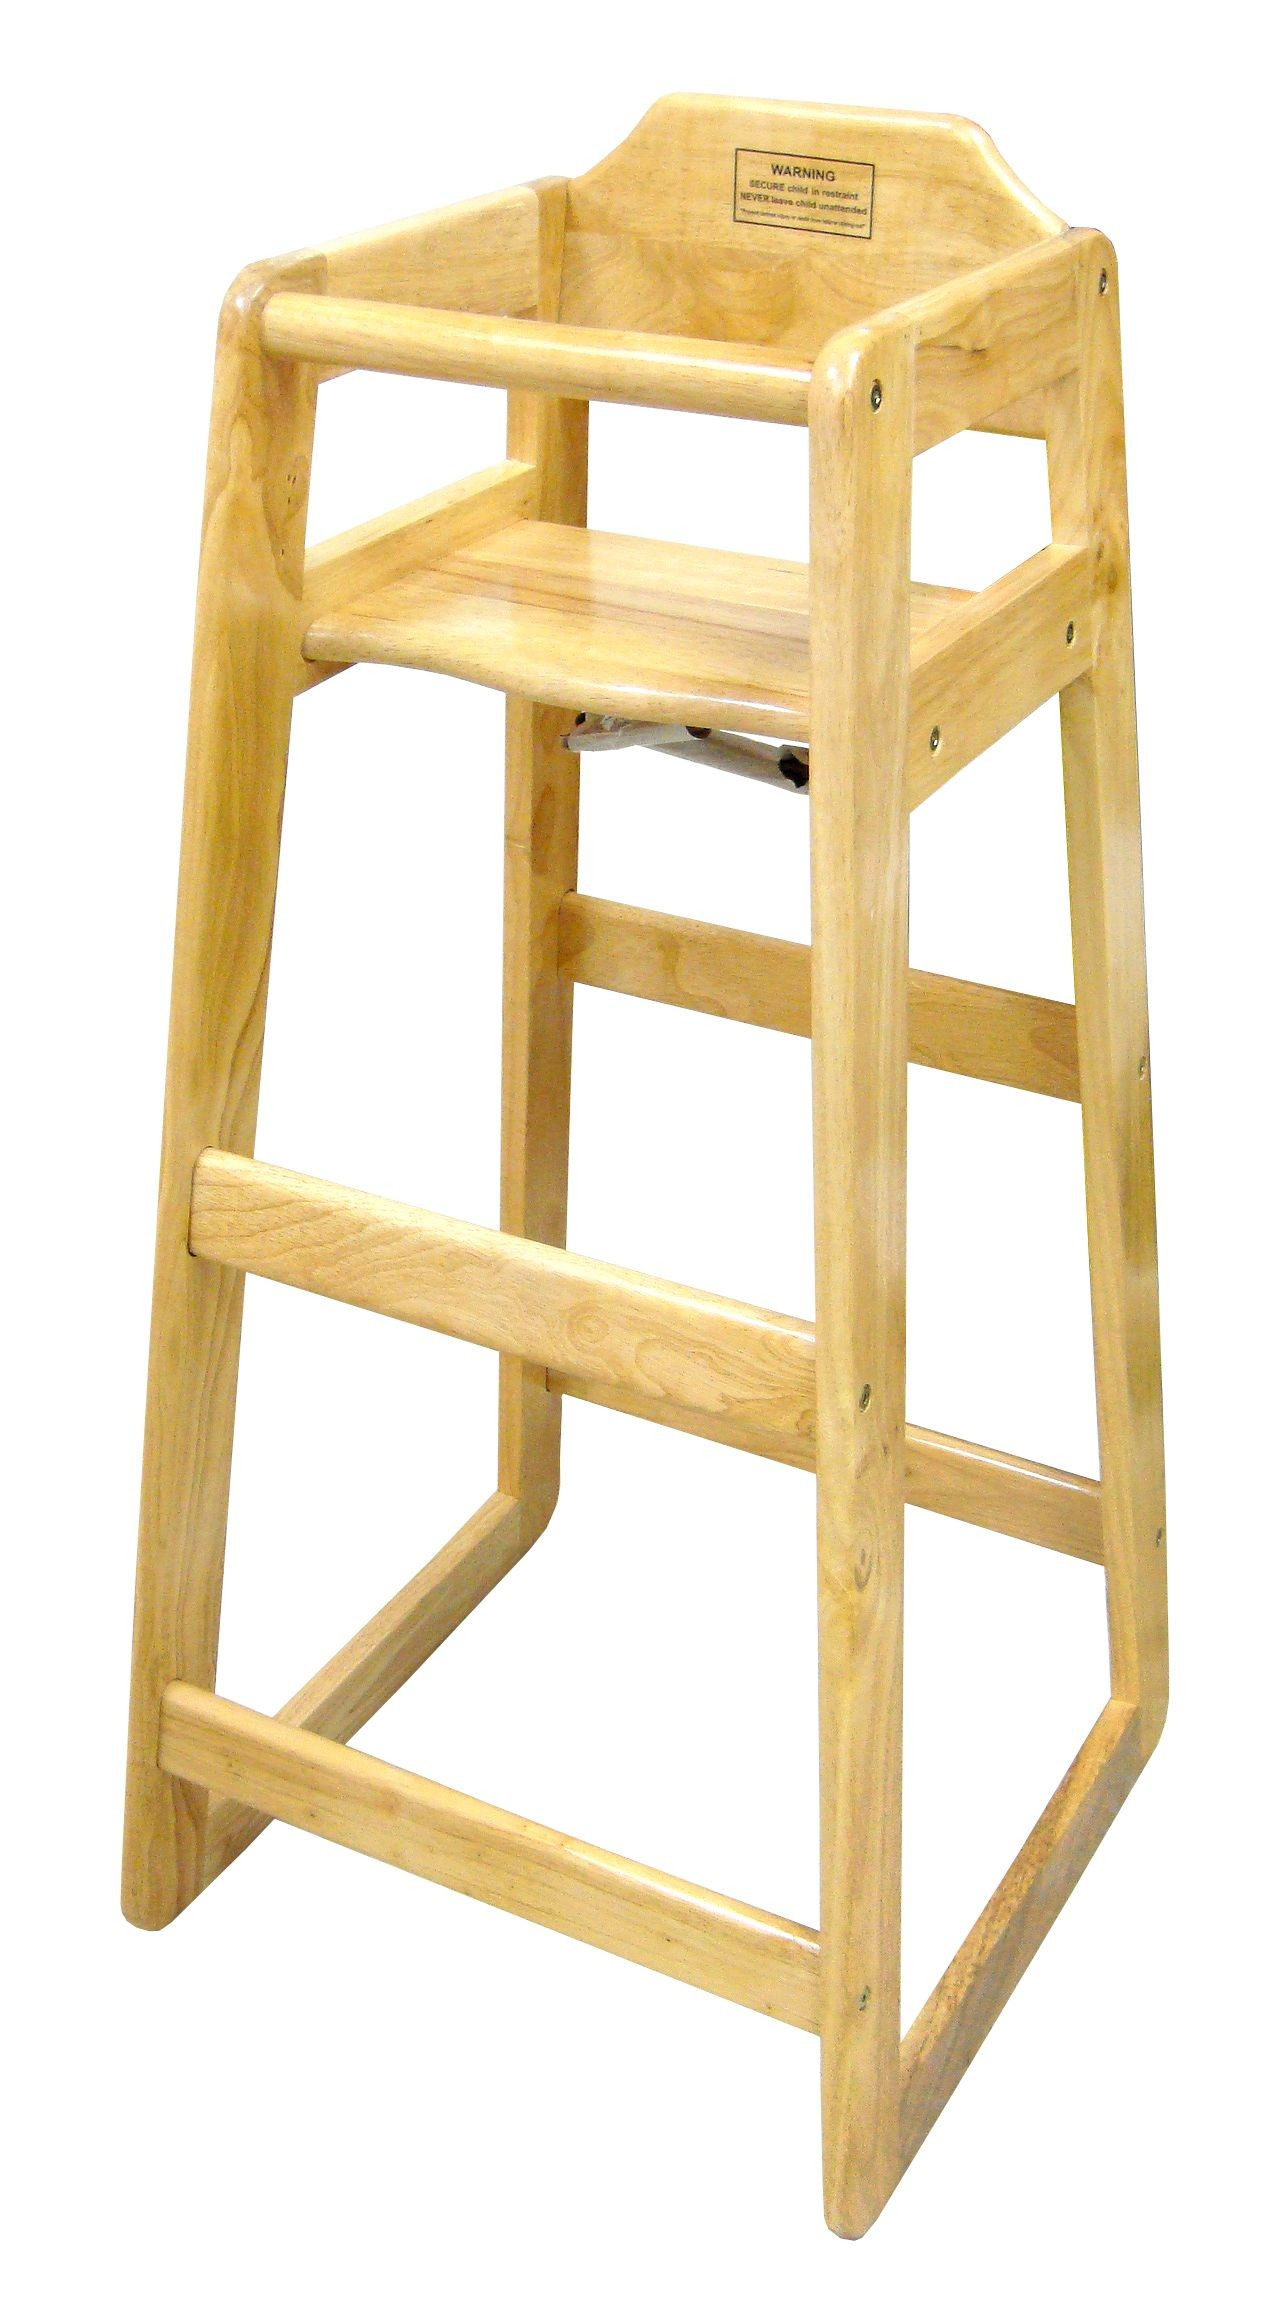 Wooden Pub High Chair